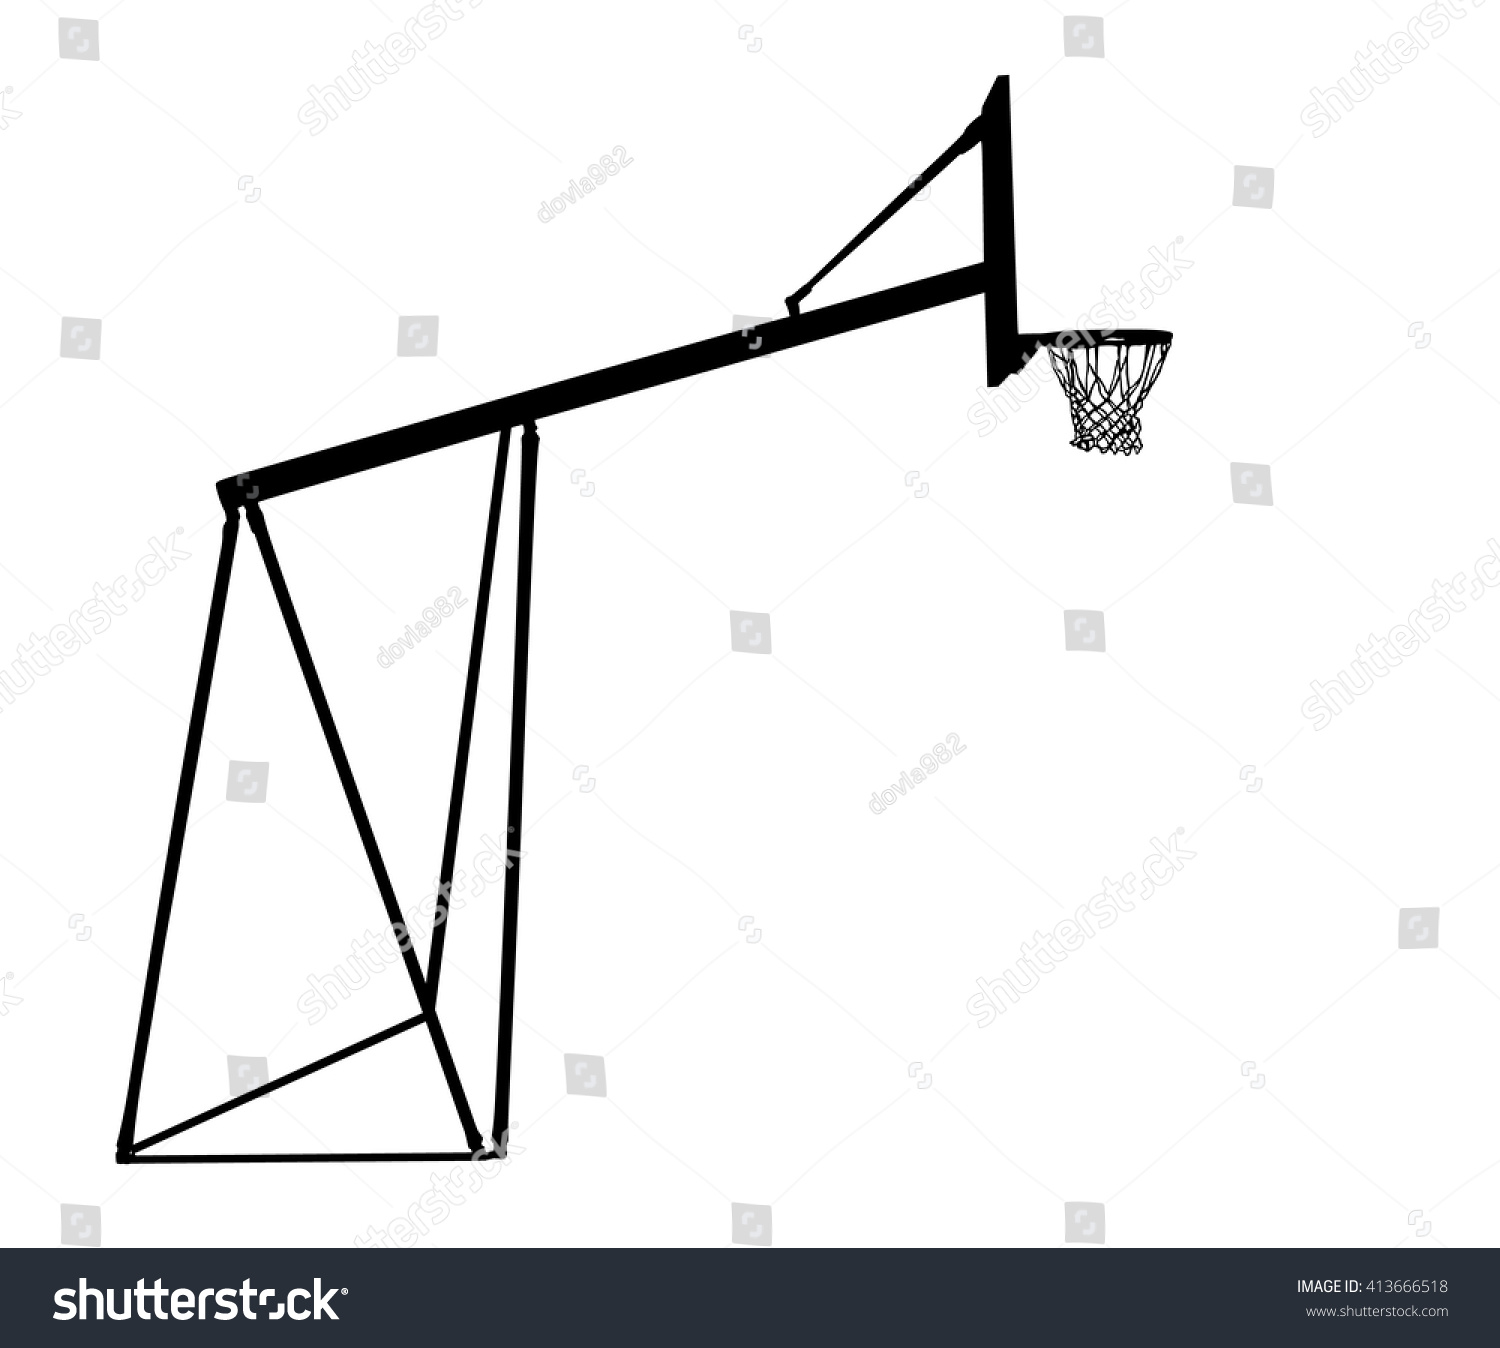 Basketball Hoop Vector Silhouette Illustration Stock Royalty Diagram